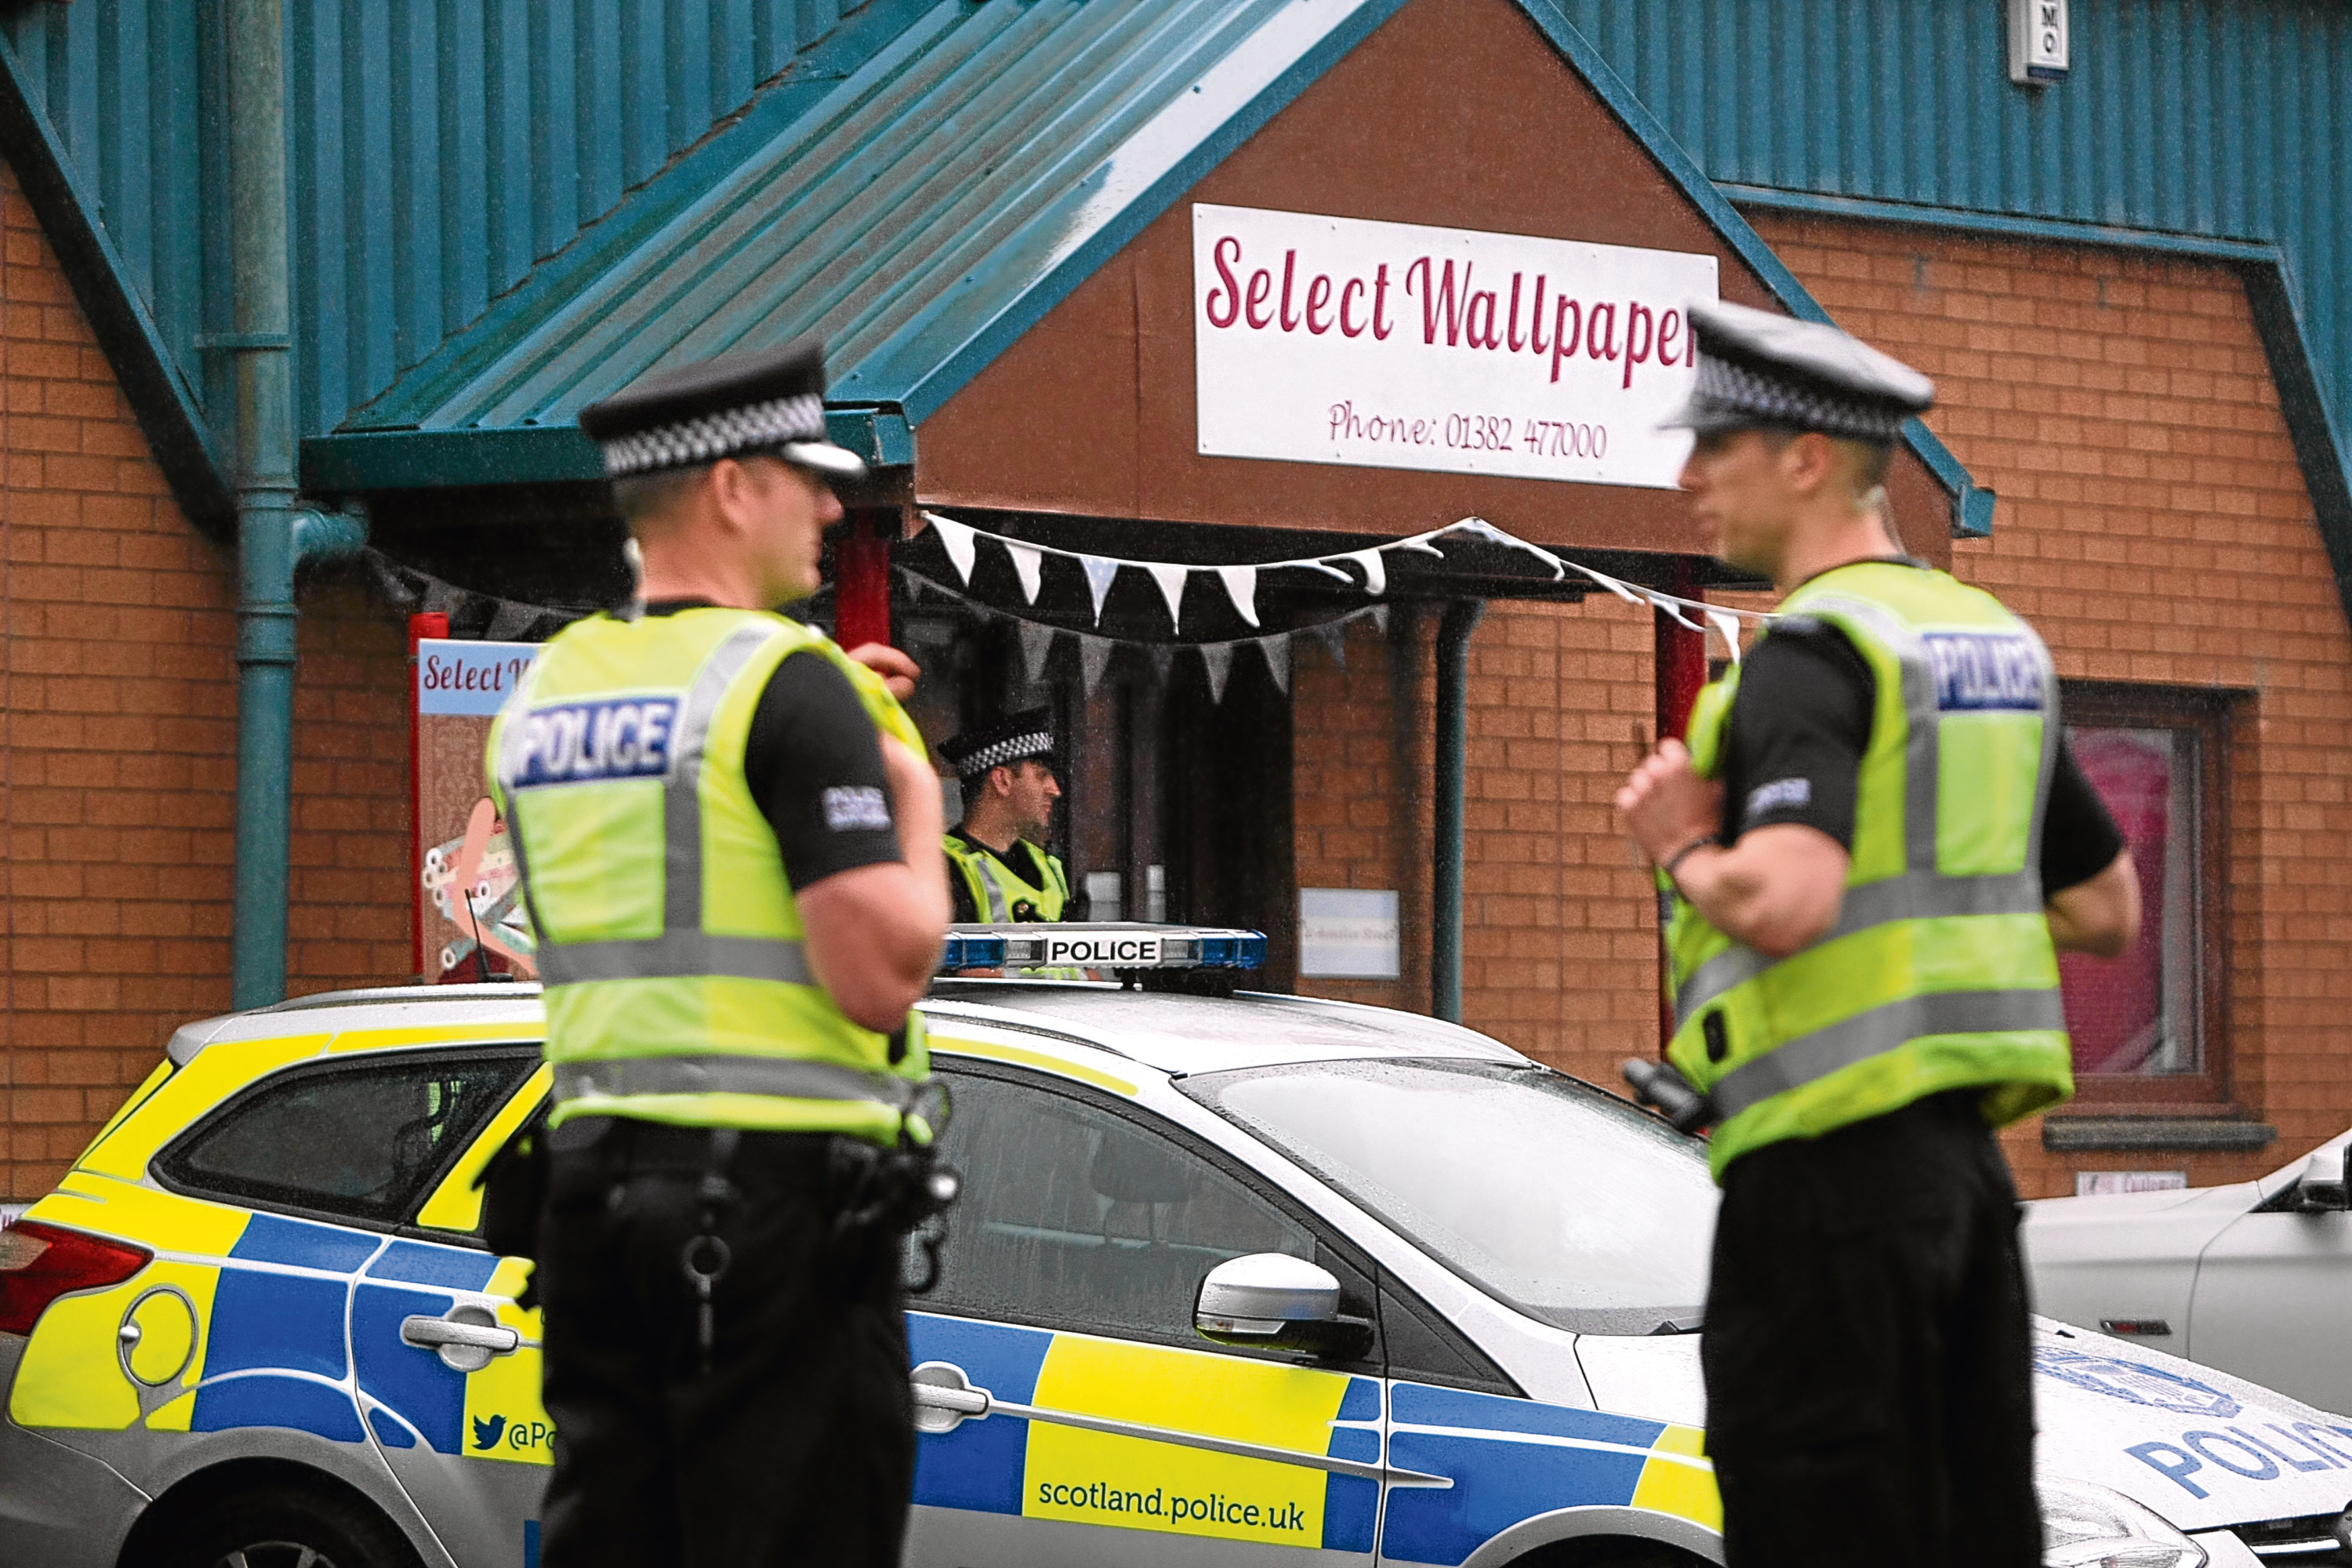 Police officers and vehicles in West Pitkerro Industrial estate on Wednesday, August 2.